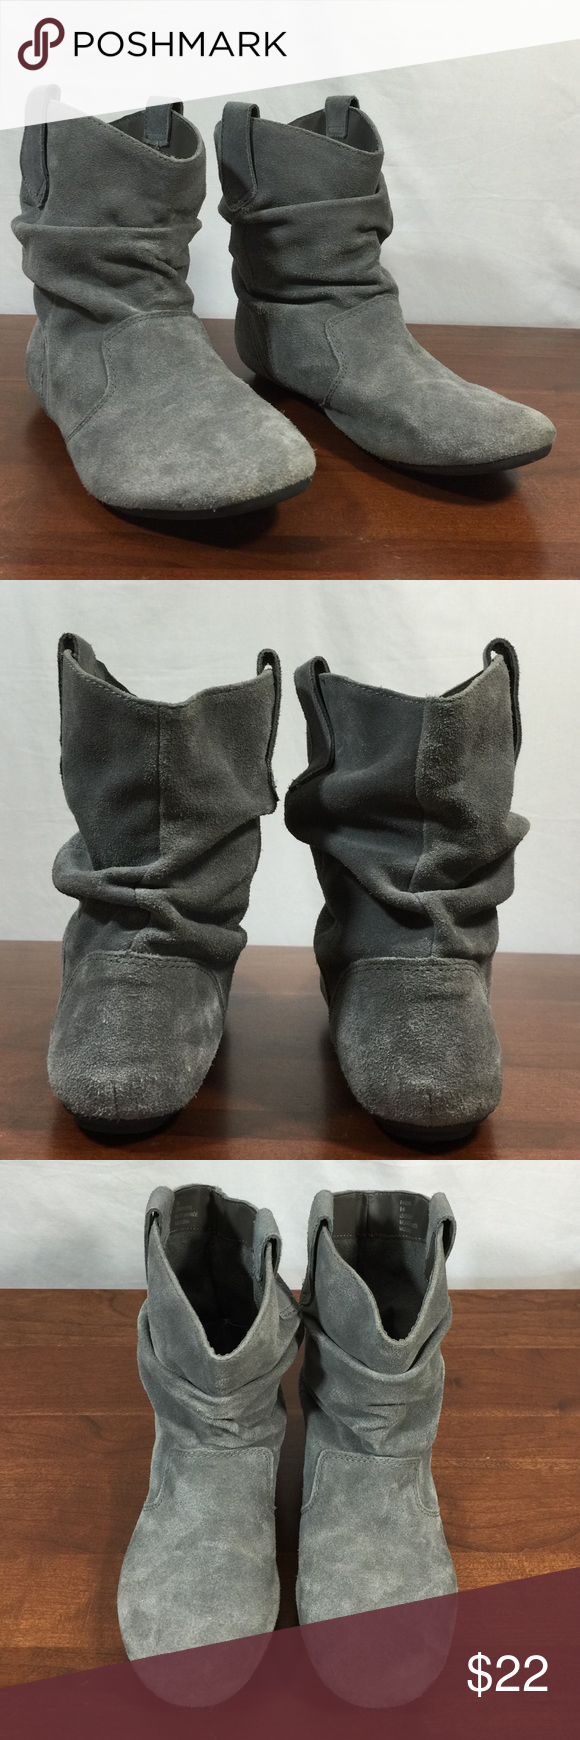 4c25fb2a3041 Steve Madden Slouch Ankle Boots Gray Suede wear to the suede on both boots  with some